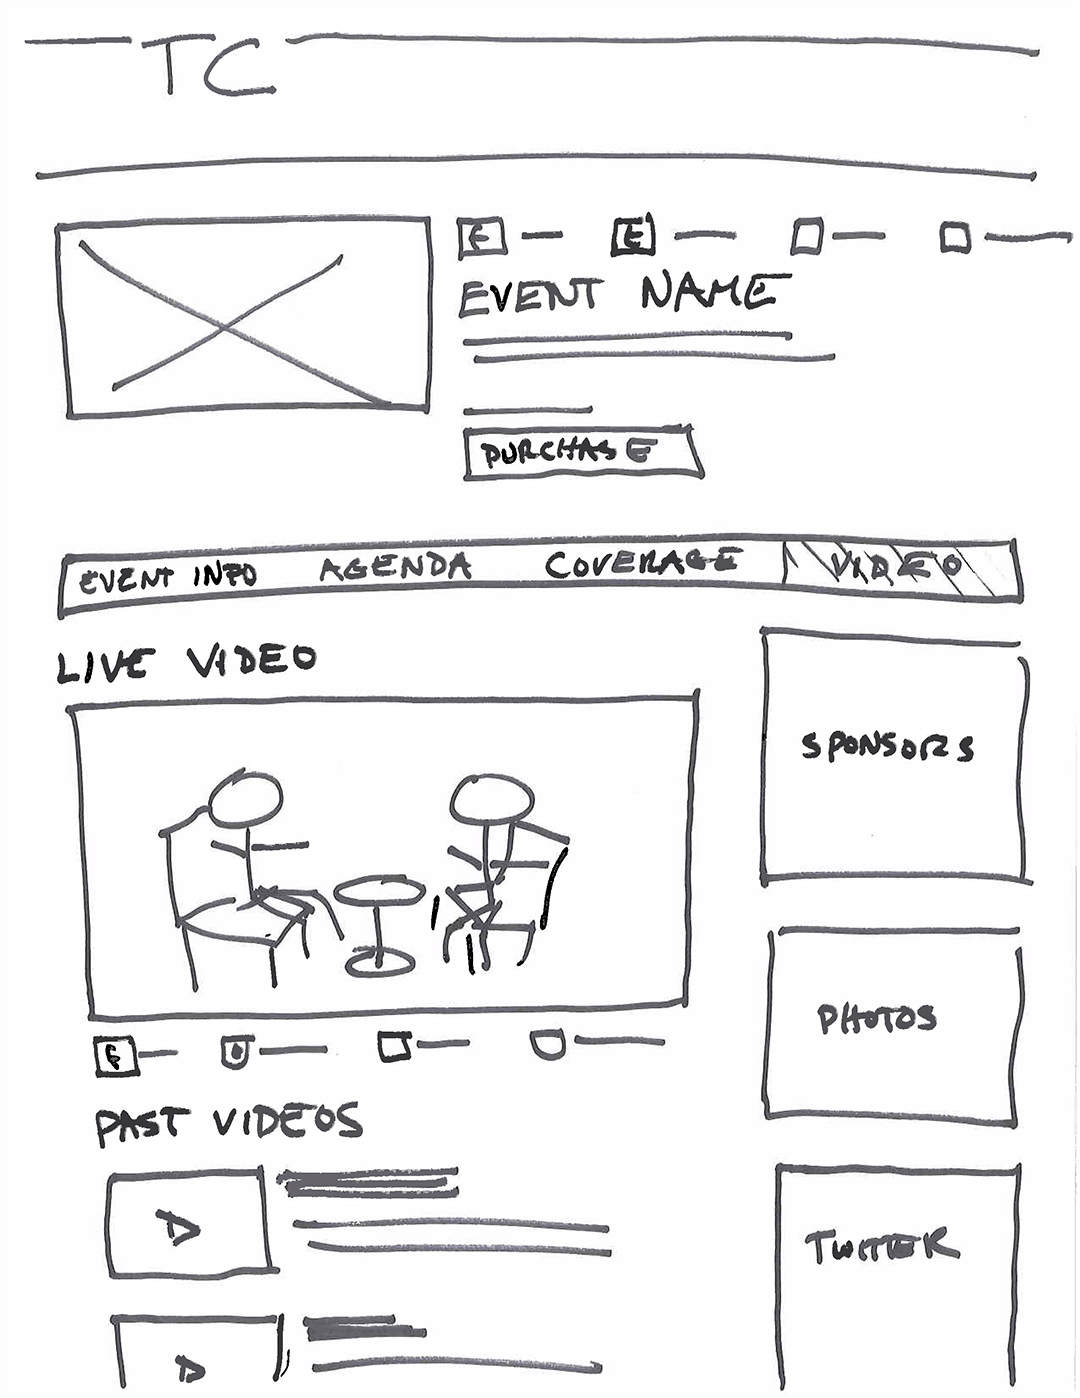 event-page-sketch.png